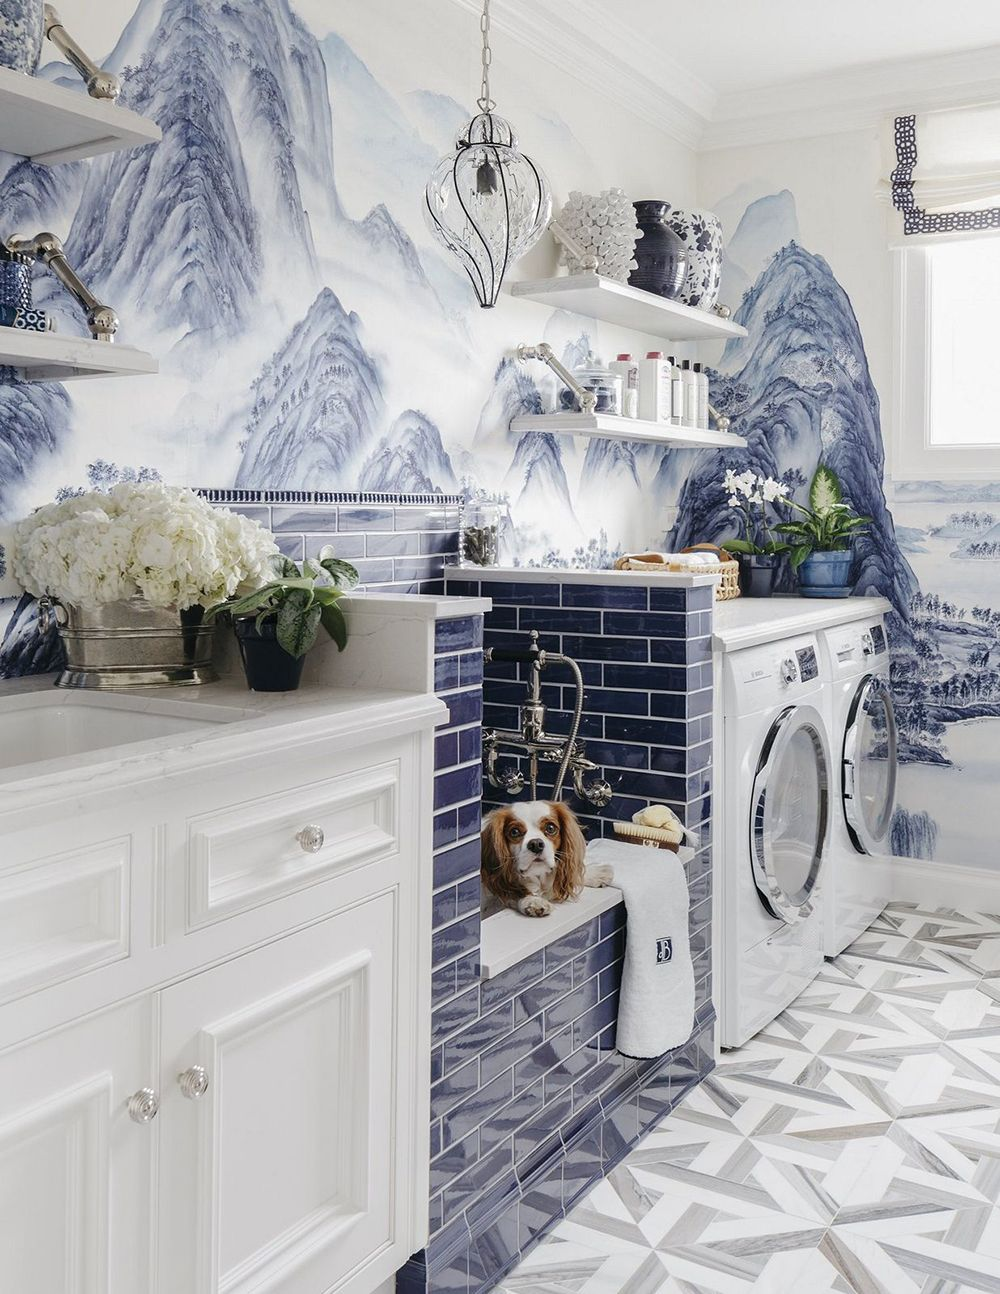 10 Pins Pinterest Inspiration Room For Tuesday Blog In 2020 White Laundry Rooms Stylish Laundry Room Laundry Room Design